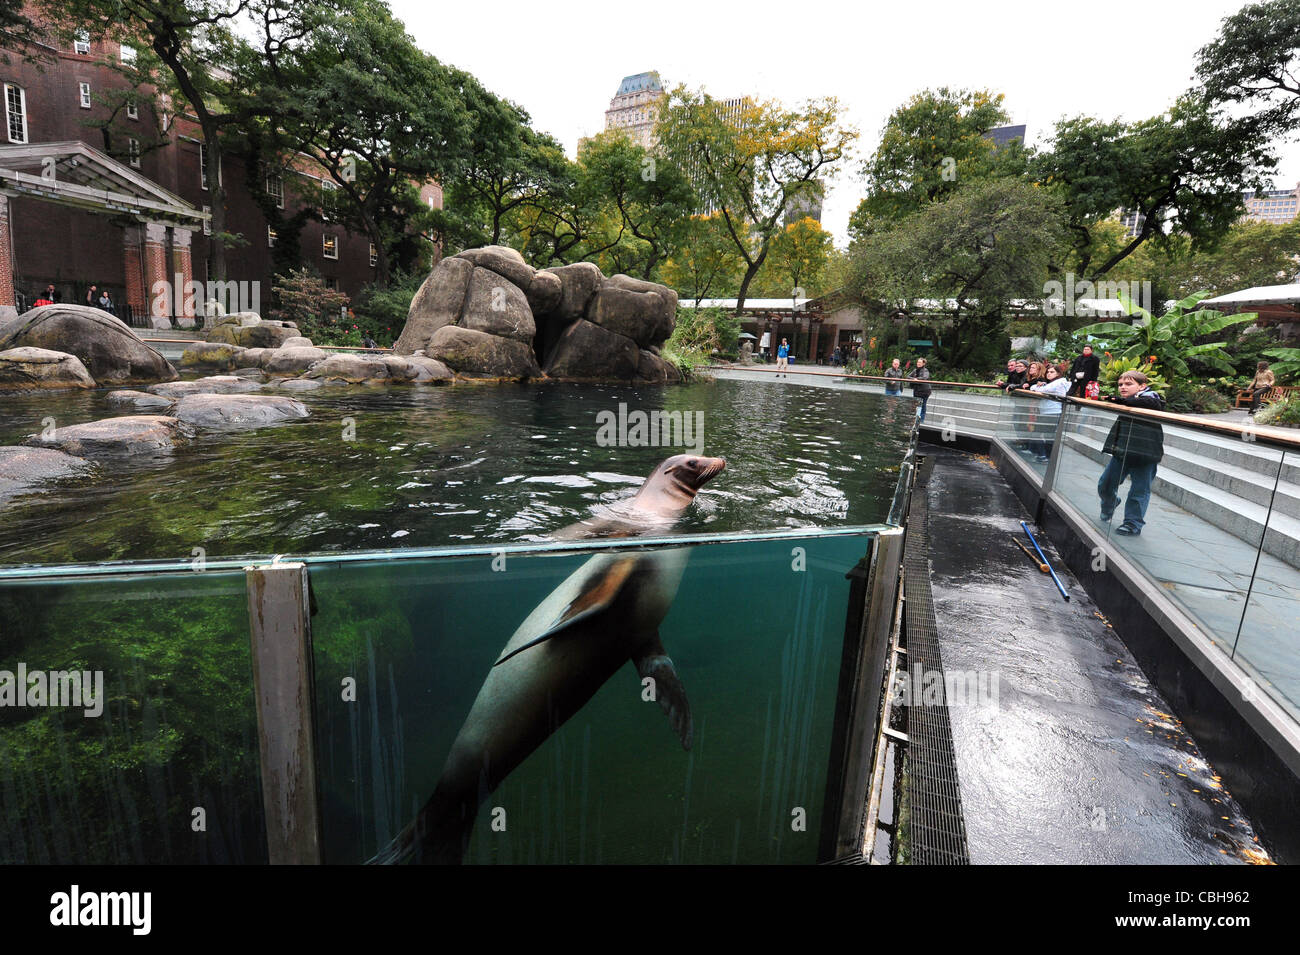 zoo new york sea lion stock photos zoo new york sea lion stock